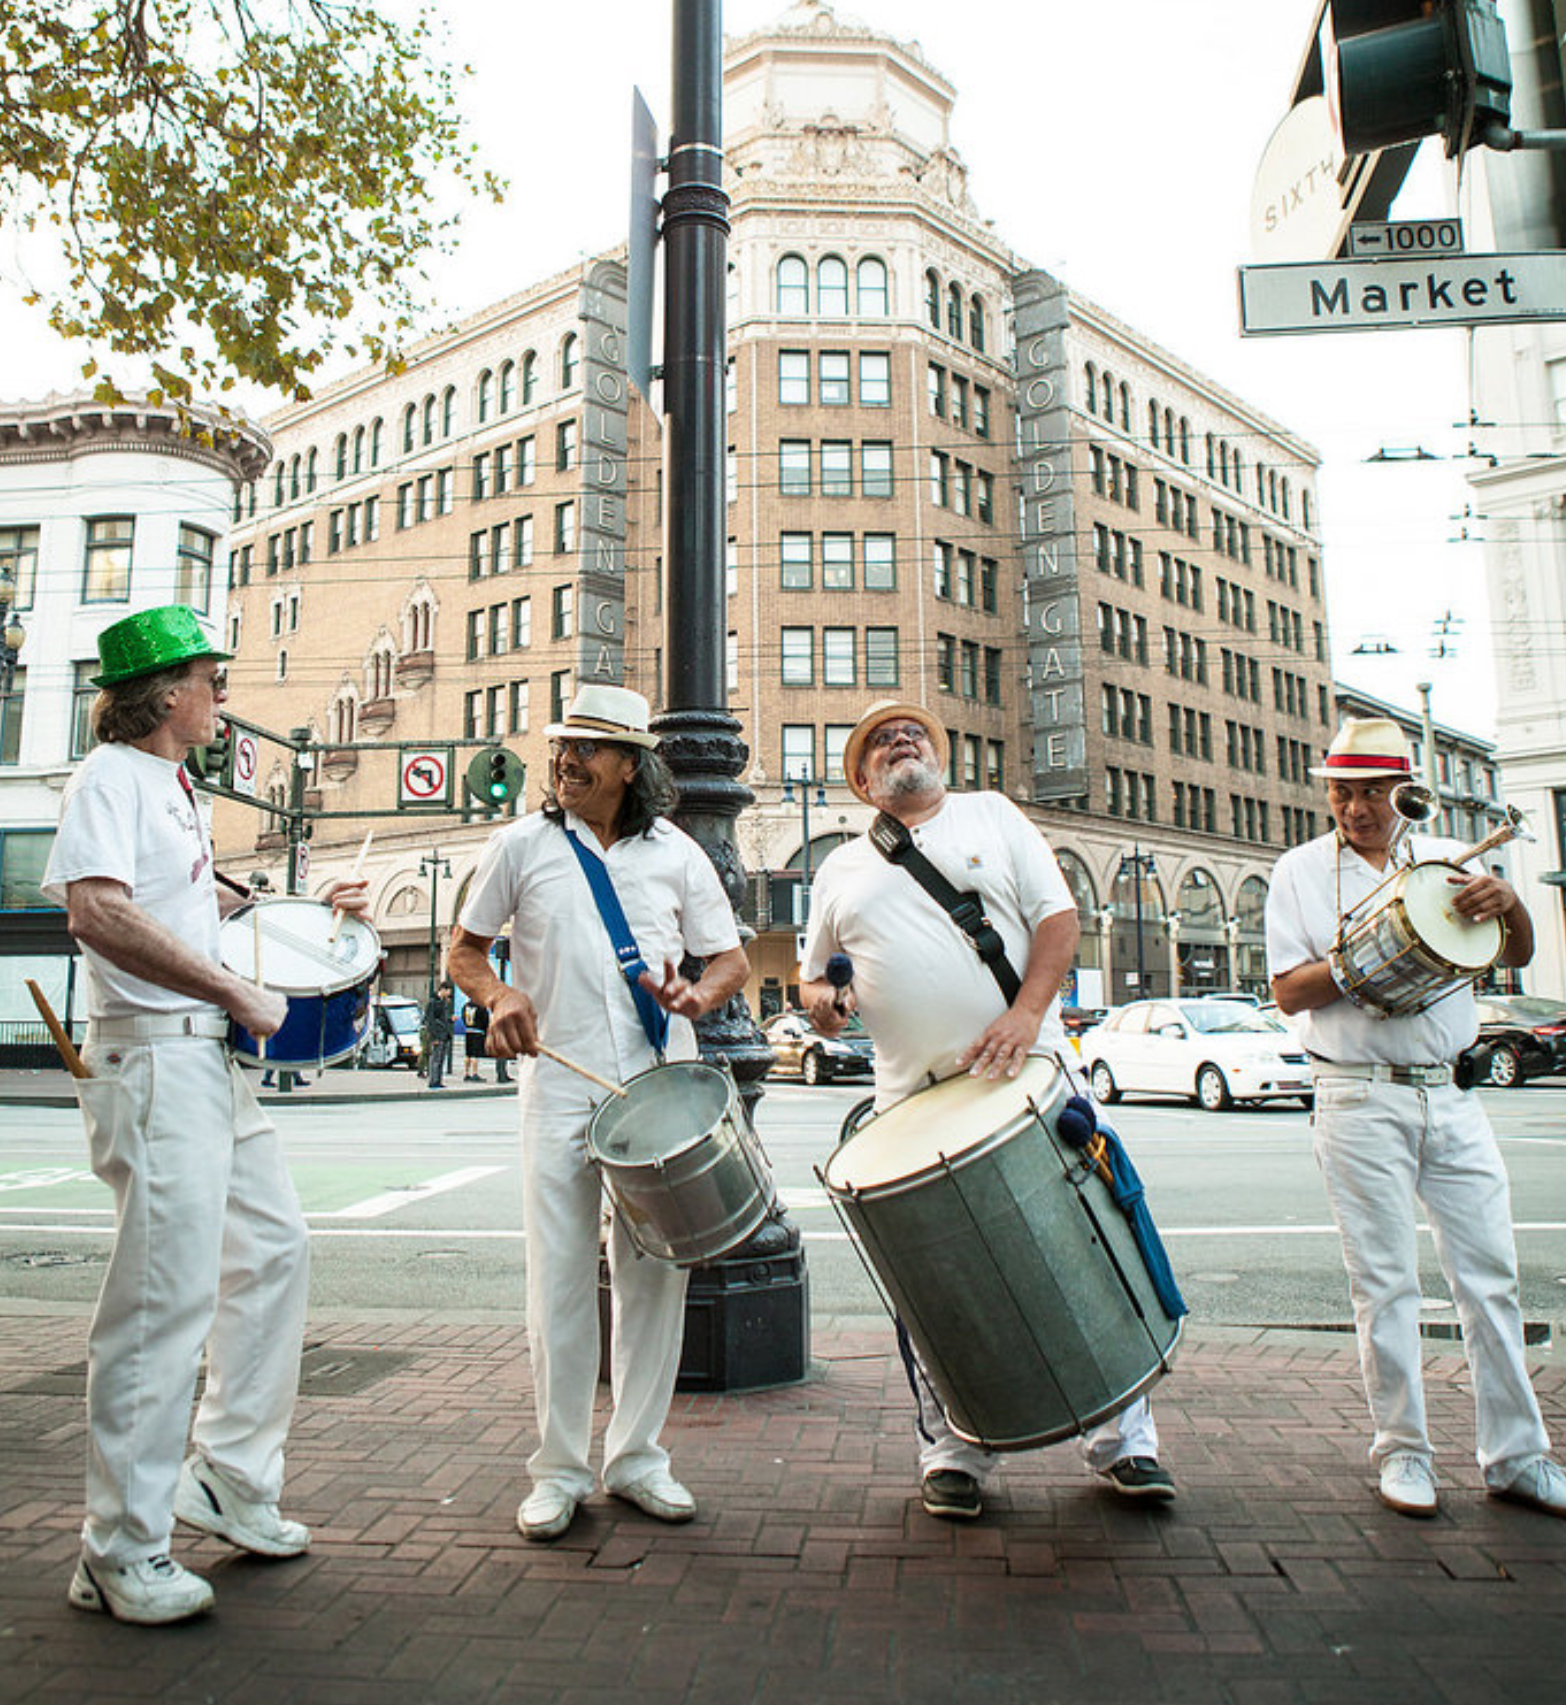 Group of musicians playing music on Market Street in SF